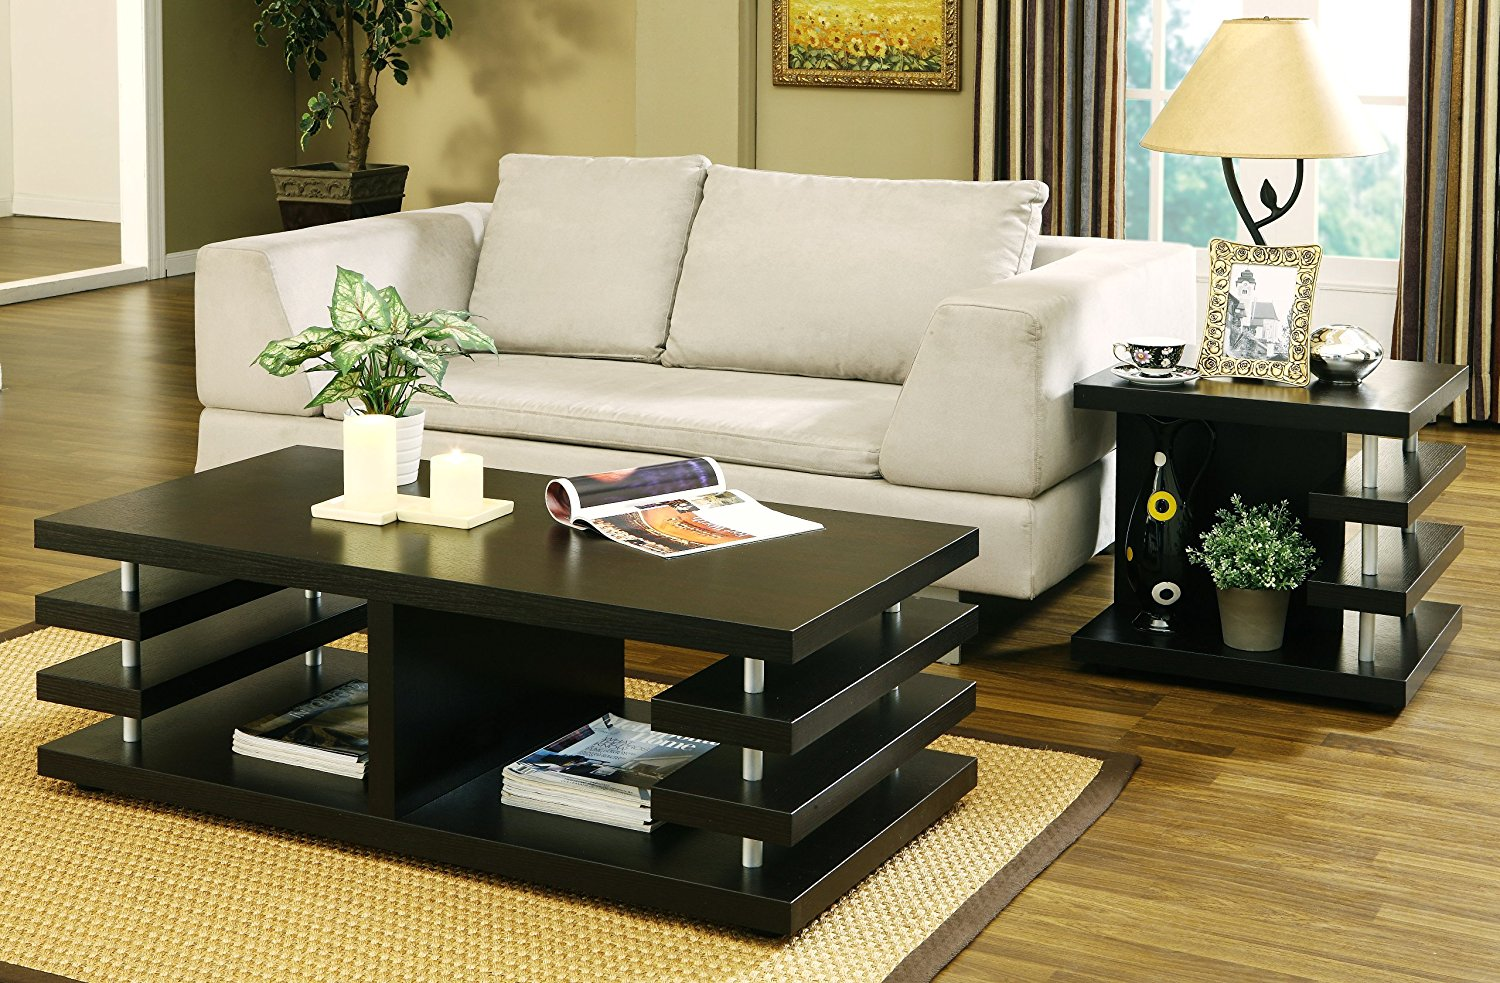 most exceptional black coffee table sets with storage modern round white and wood living room decorating ideas for end tables genius office furniture small lamp shades lamps